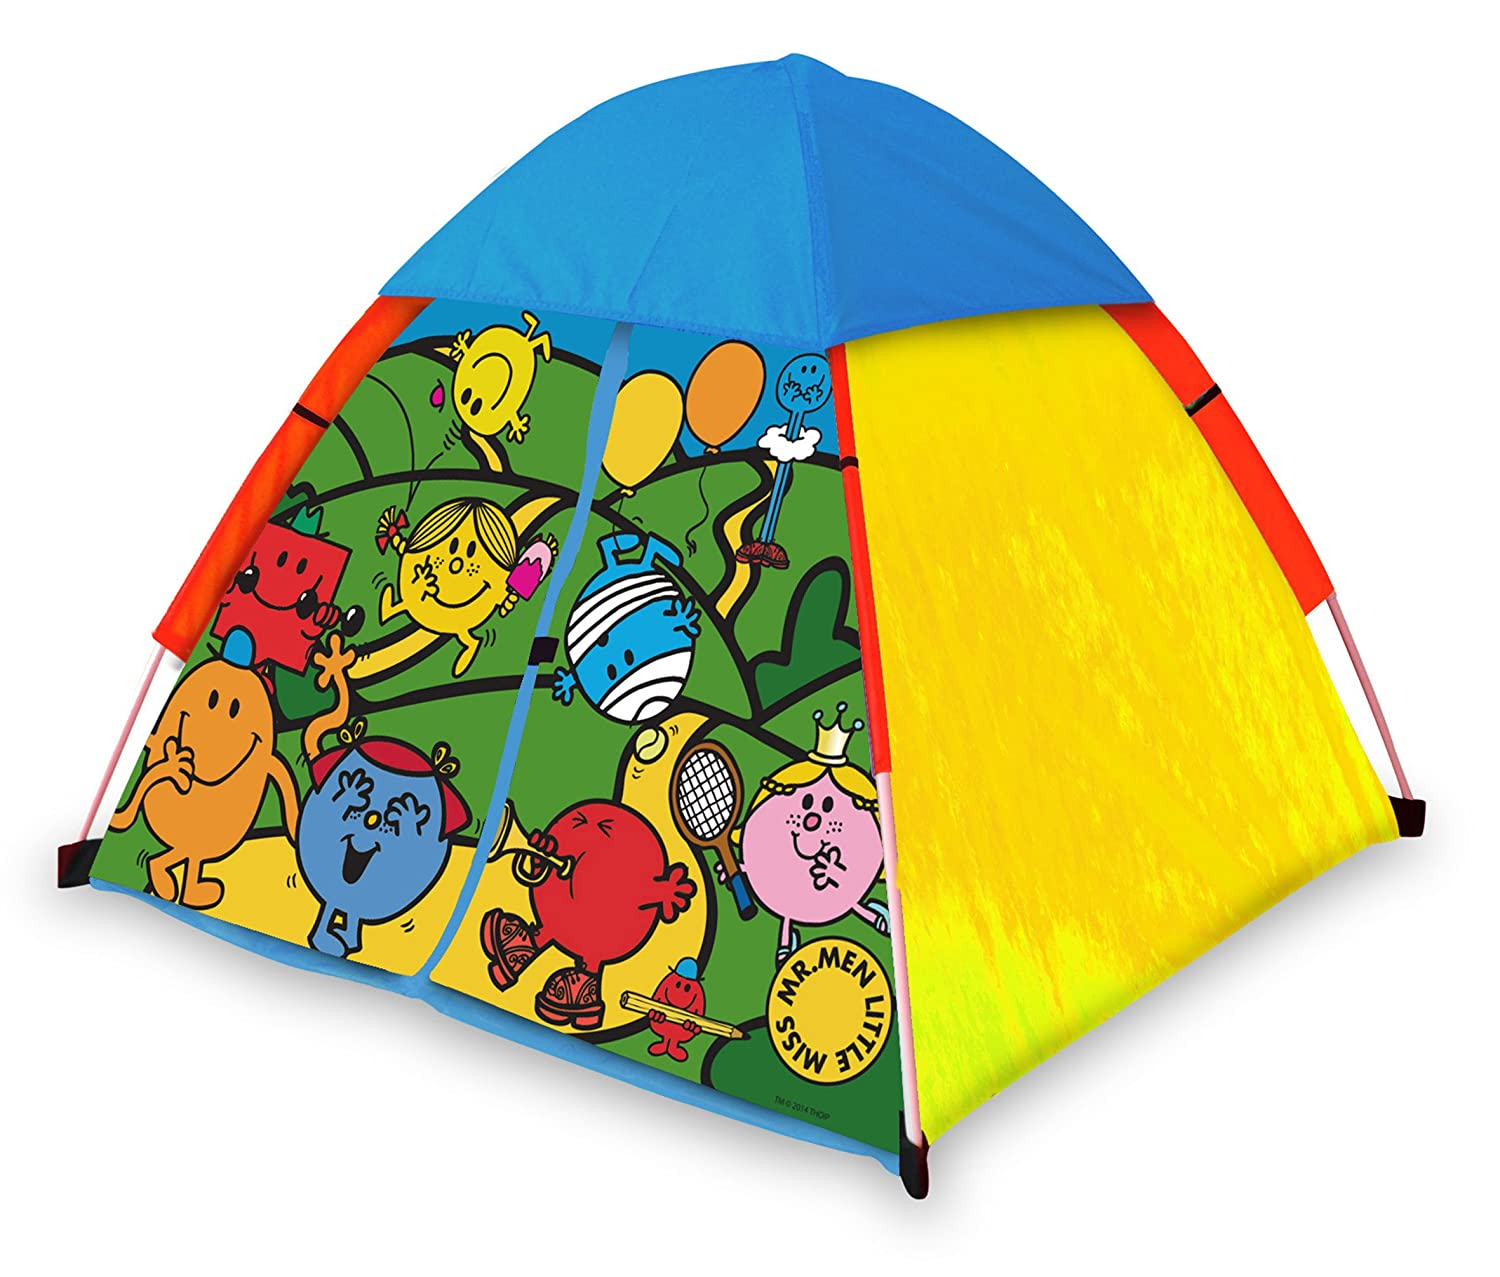 sc 1 st  Amazon.ca & Mr. Men Igloo Tent Play Tents - Amazon Canada